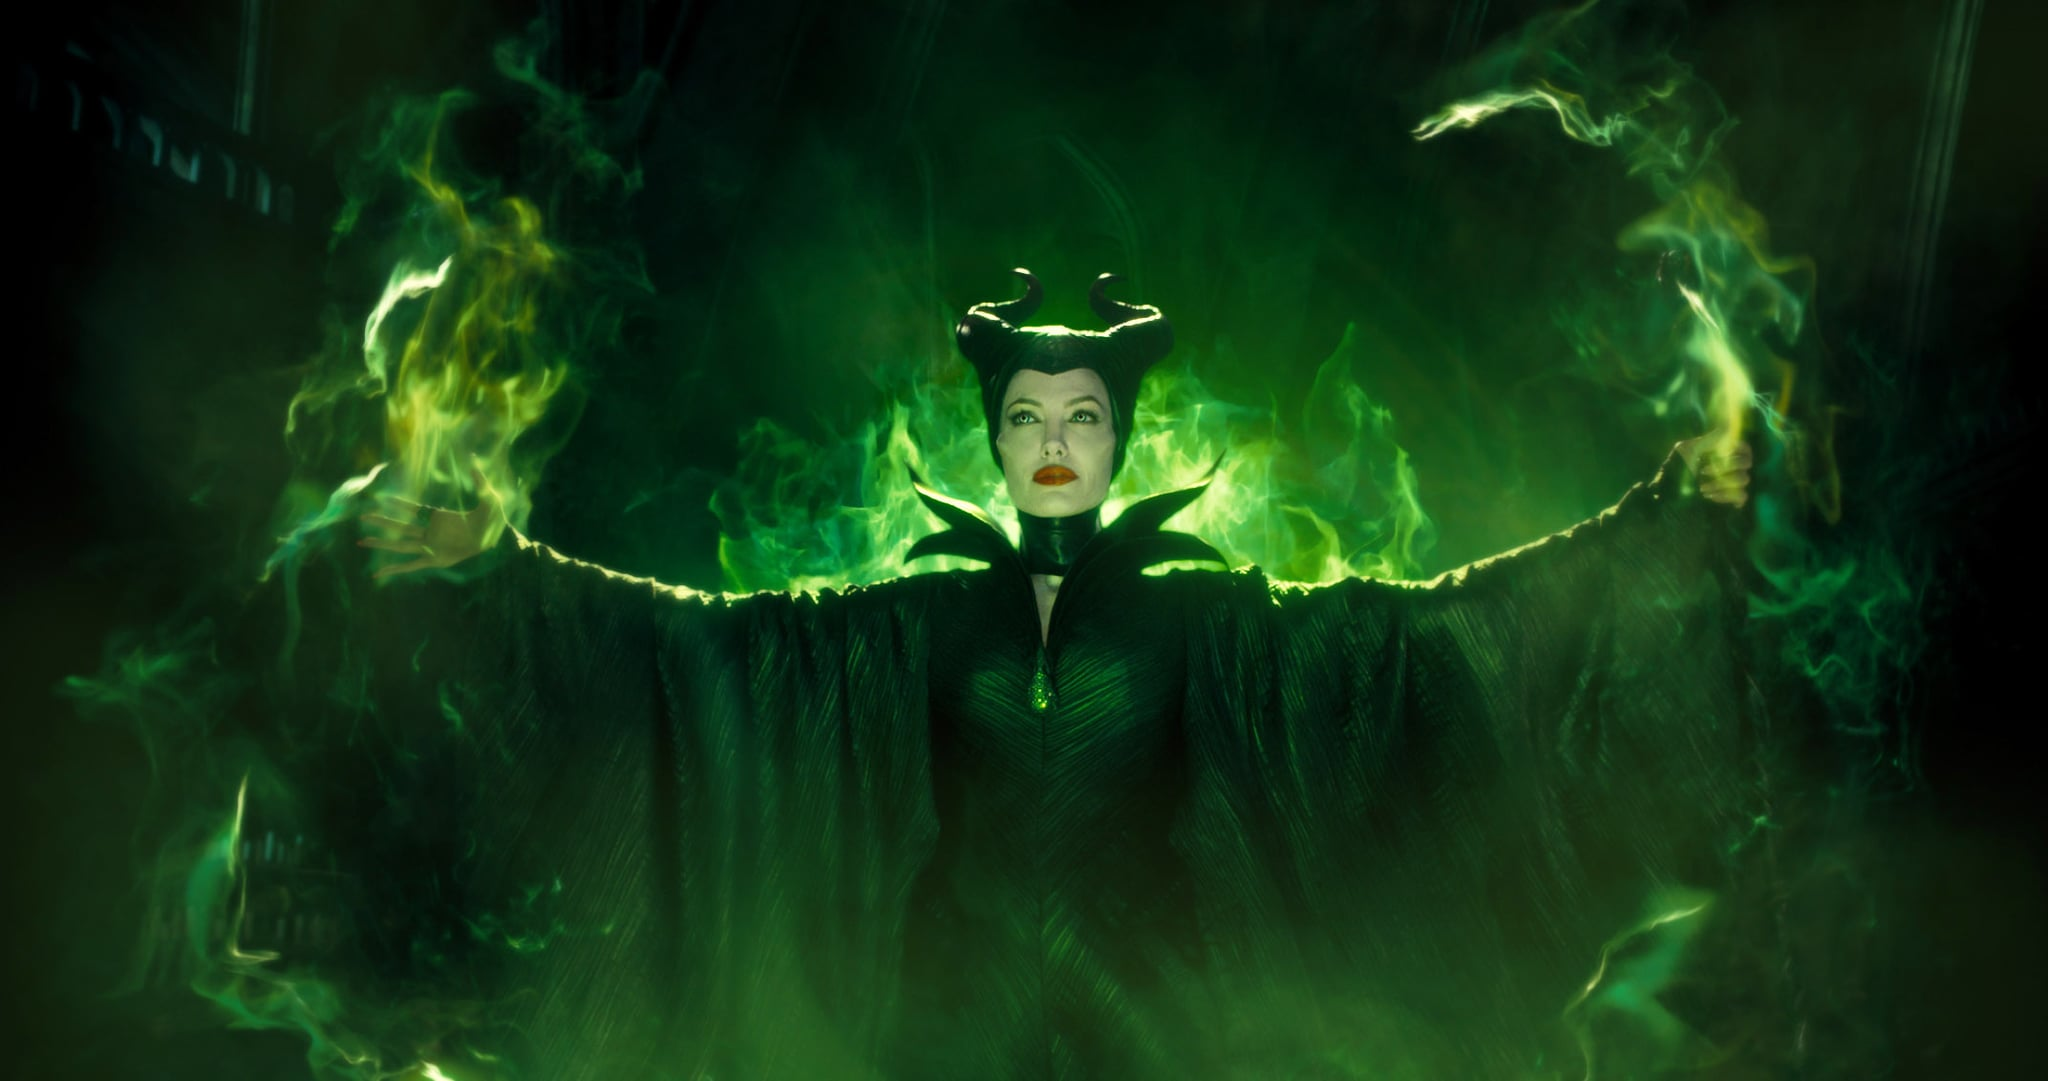 Maleficent 2 Is Done Filming, but We Still Have a Long Way to Go Before It Hits Theaters